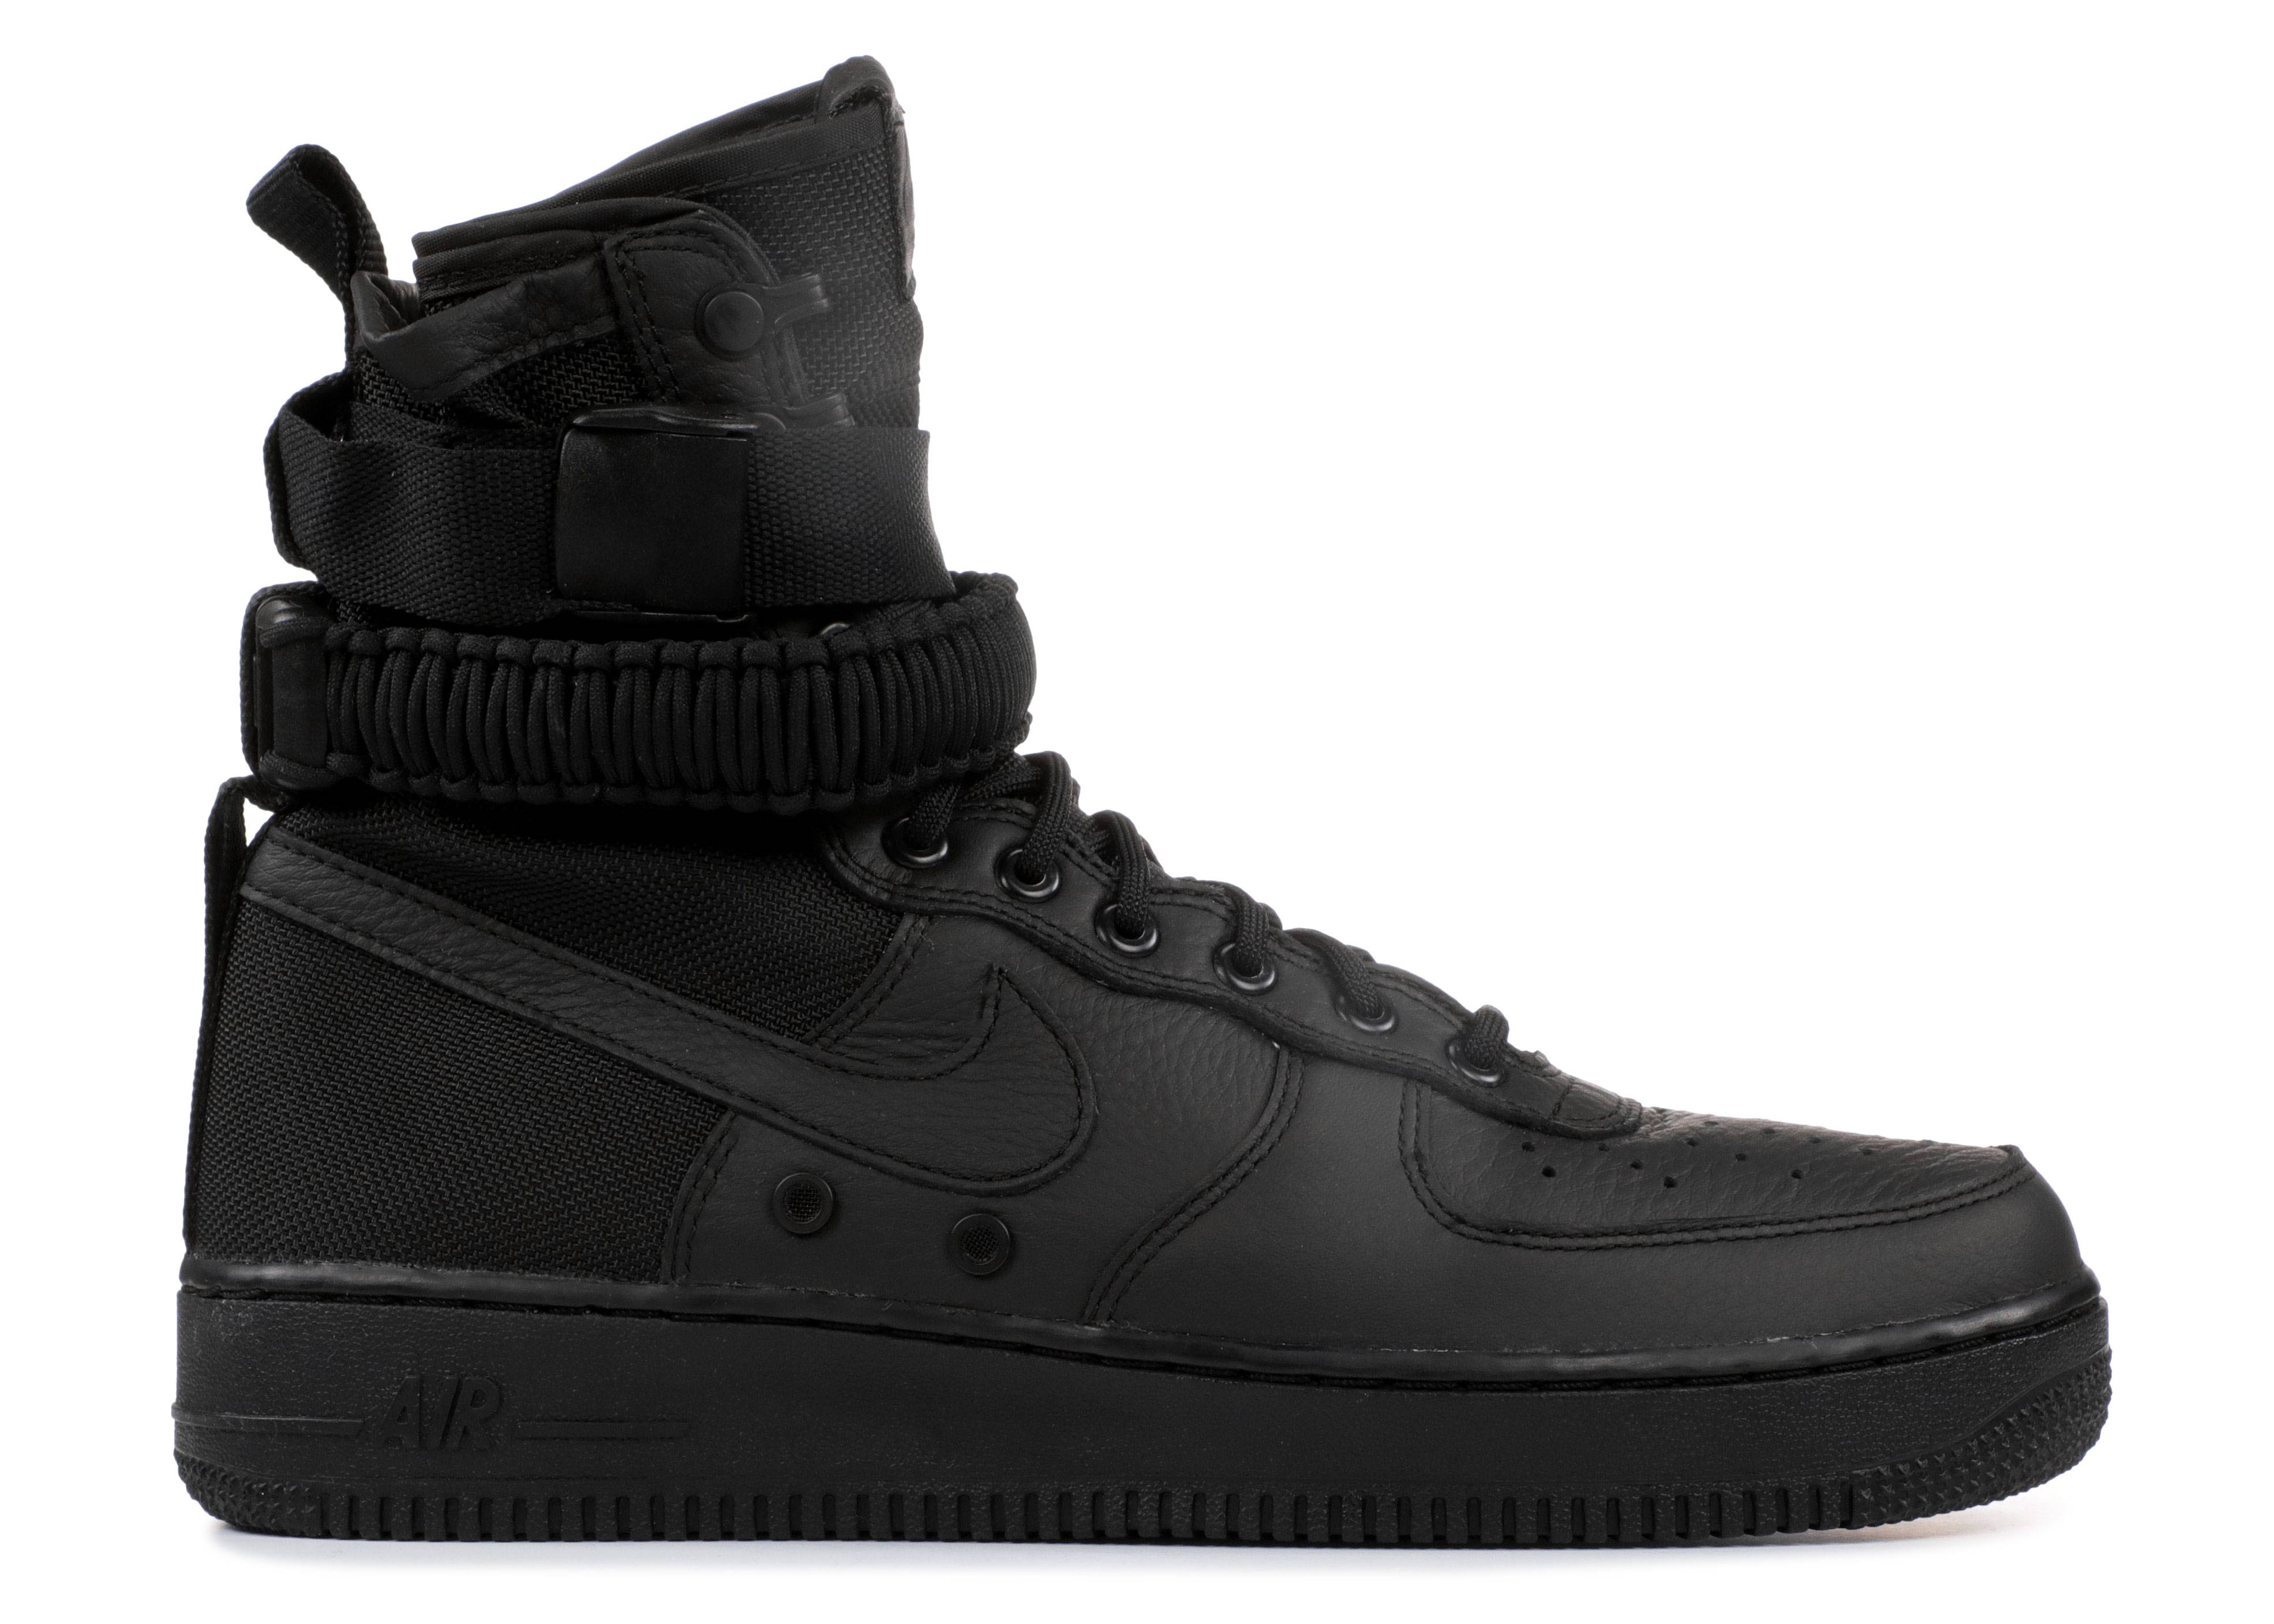 Nike Men's SF Air Force 1 High Shoes  NEW AUTHENTIC Black 864024-003